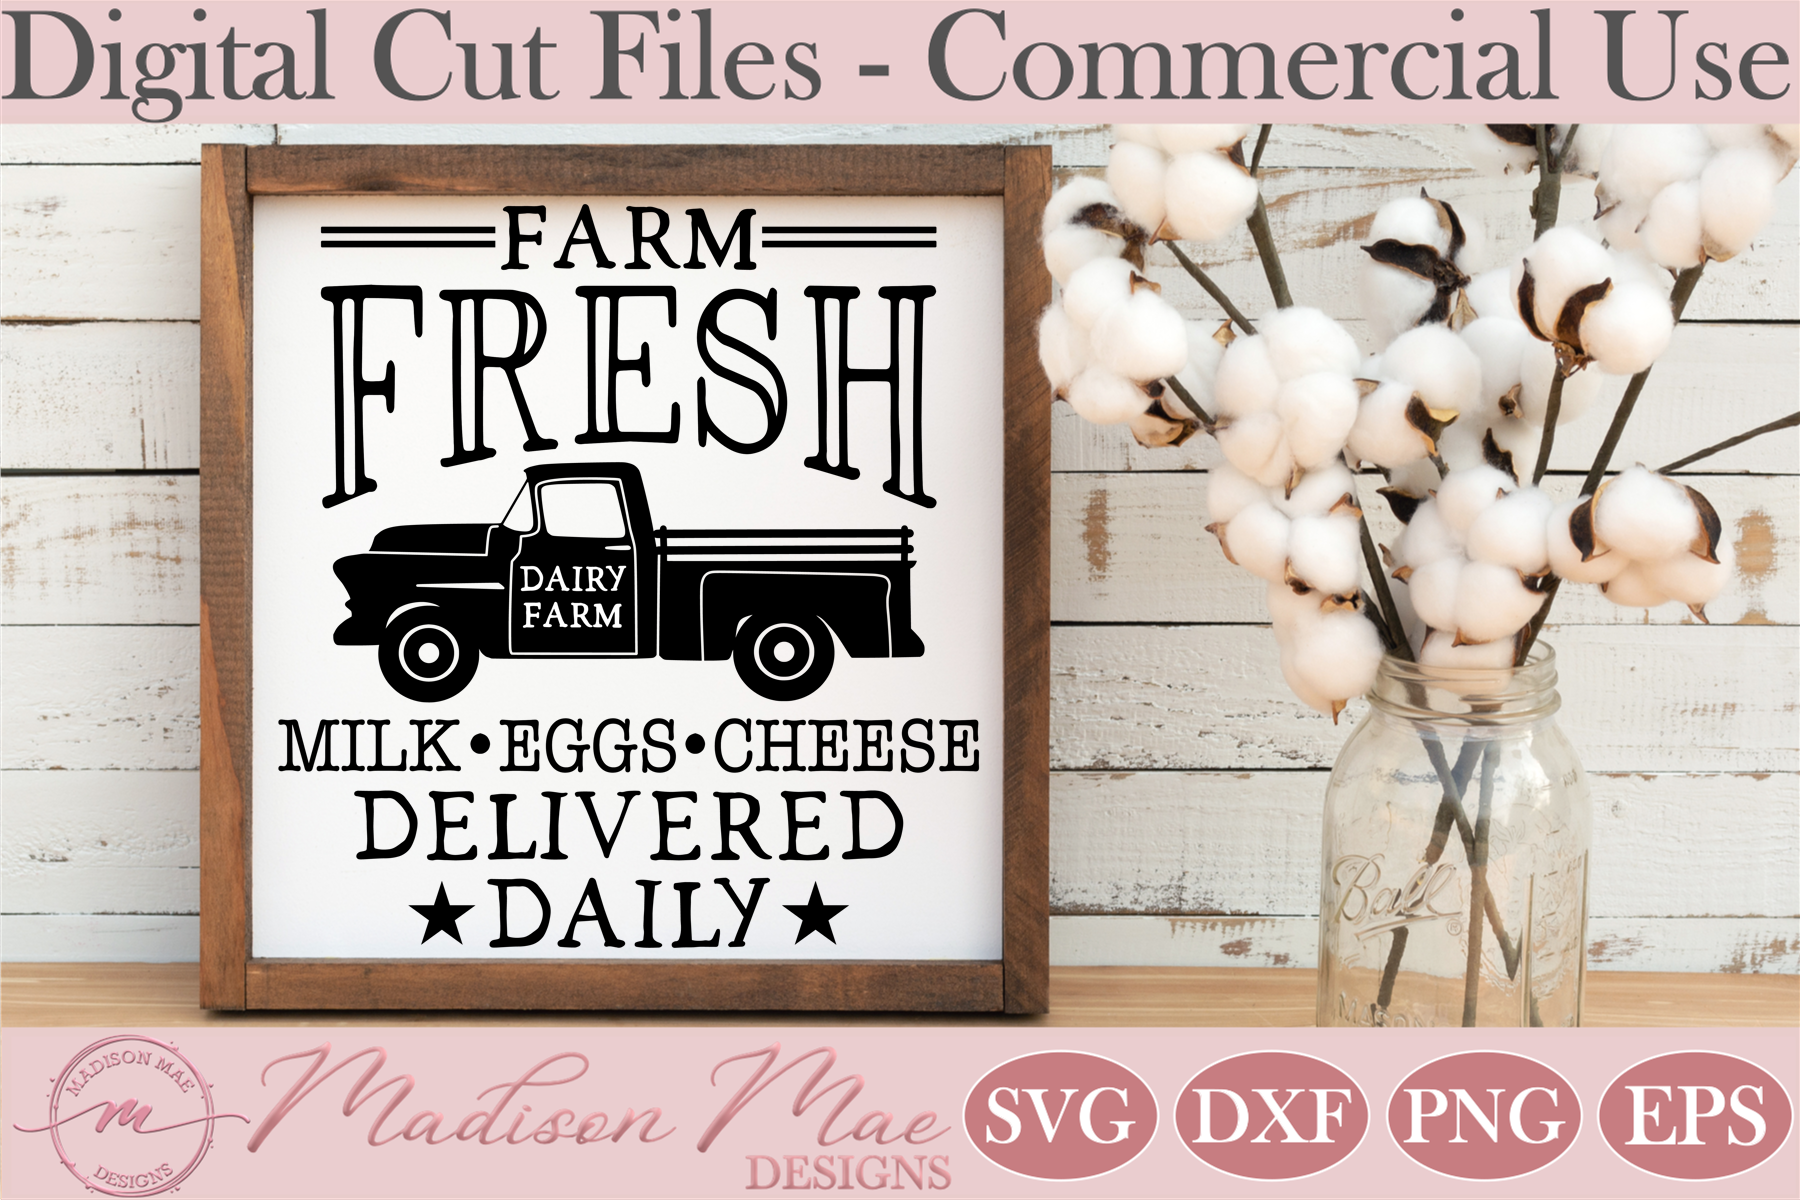 Download Free Dairy Farm Fresh Milk Egg Sign Graphic By Madison Mae Designs Creative Fabrica for Cricut Explore, Silhouette and other cutting machines.